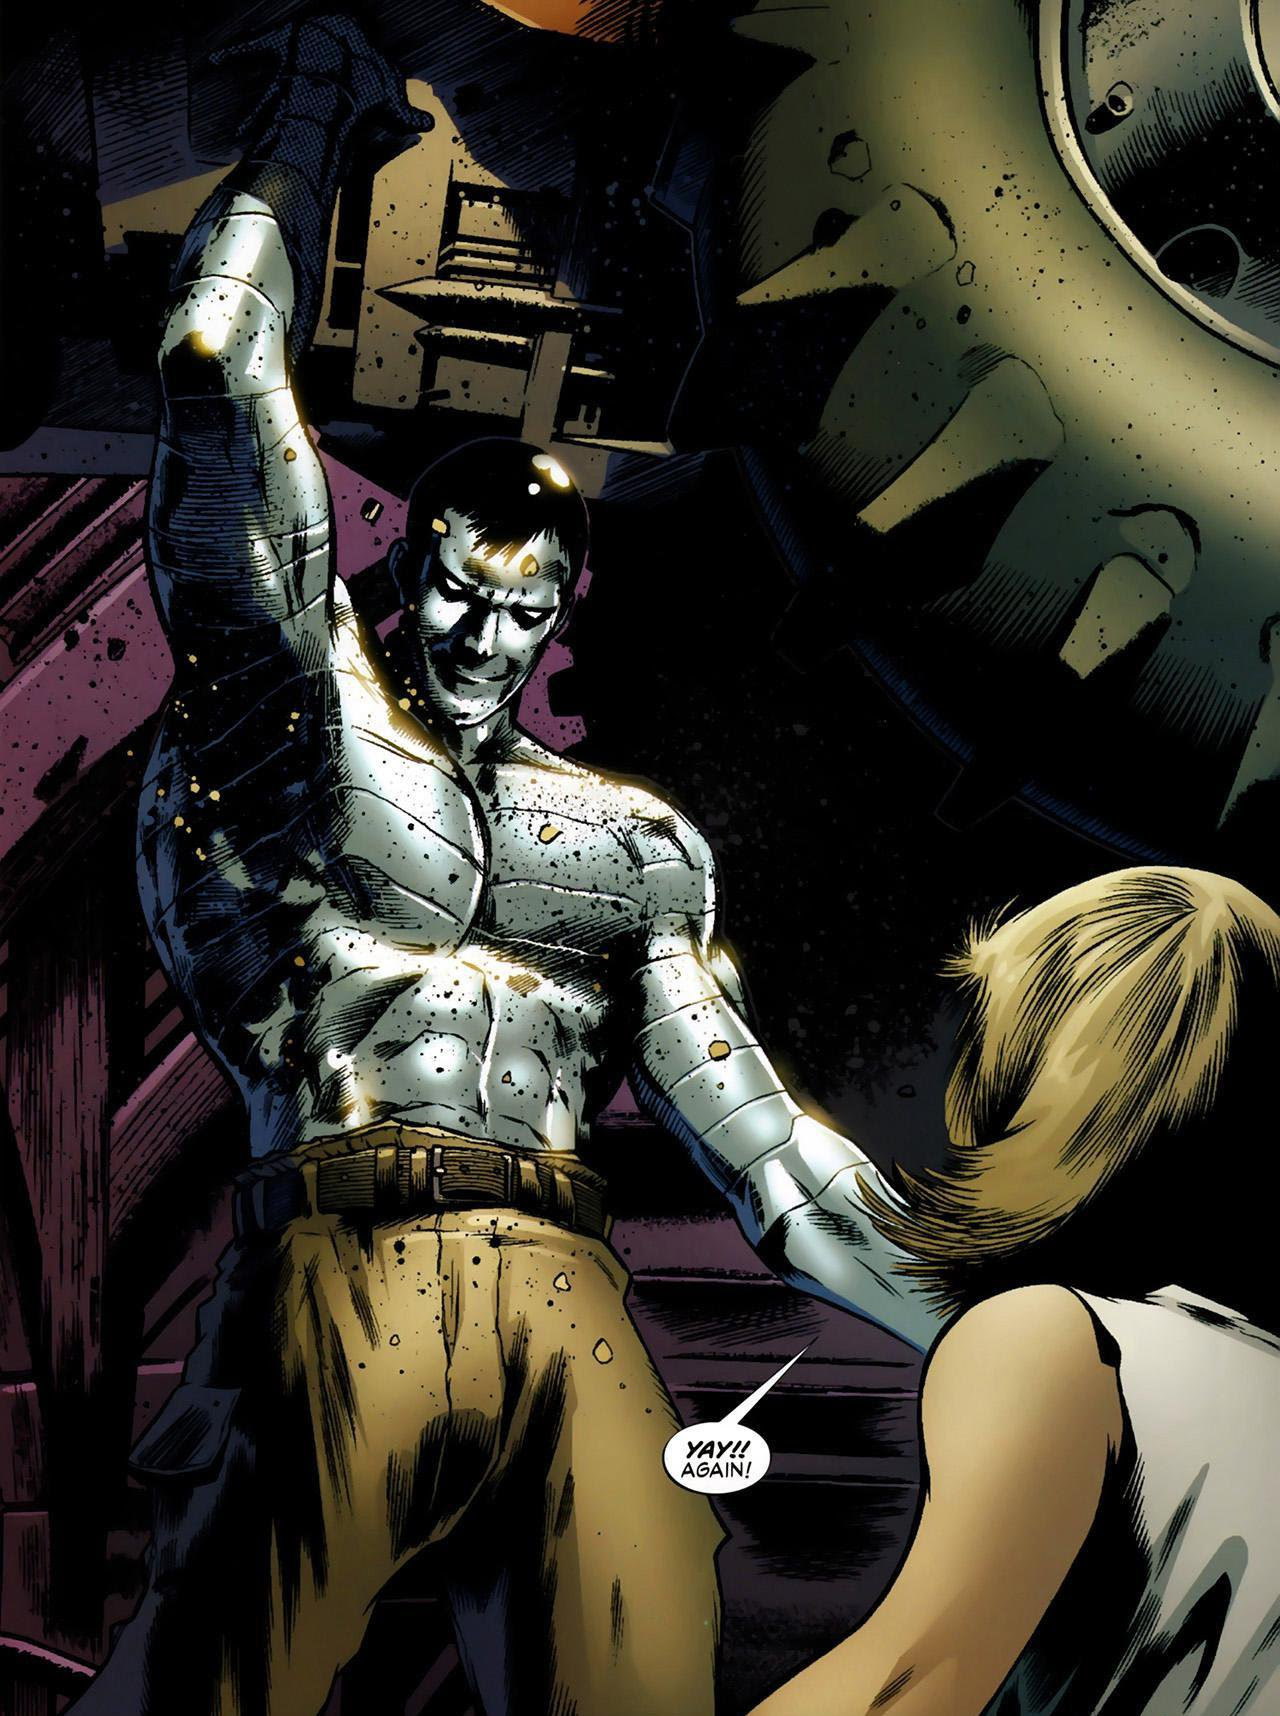 http://images6.fanpop.com/image/photos/35100000/Colossus-Piotr-Peter-Rasputin-x-men-35193389-1280-1716.jpg